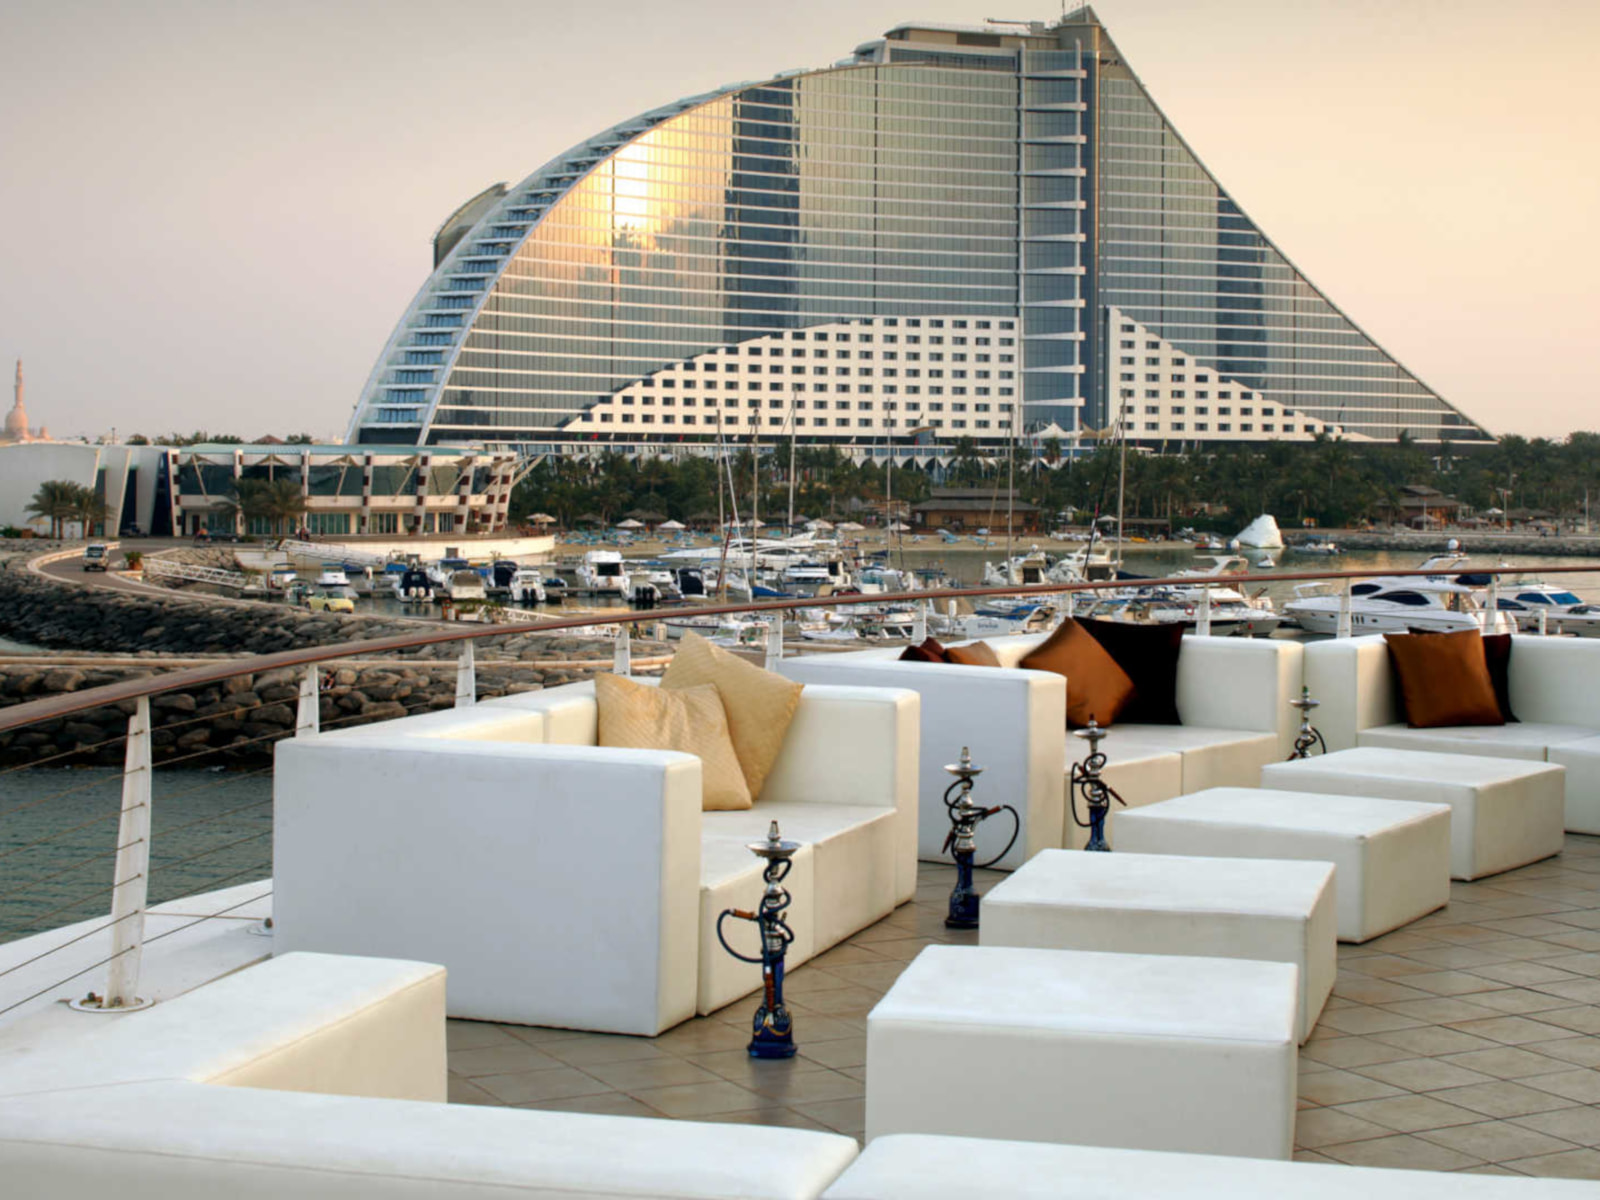 The Jumeirah Beach Hotel - one of the best tennis resorts for your tennis holidays in Dubai